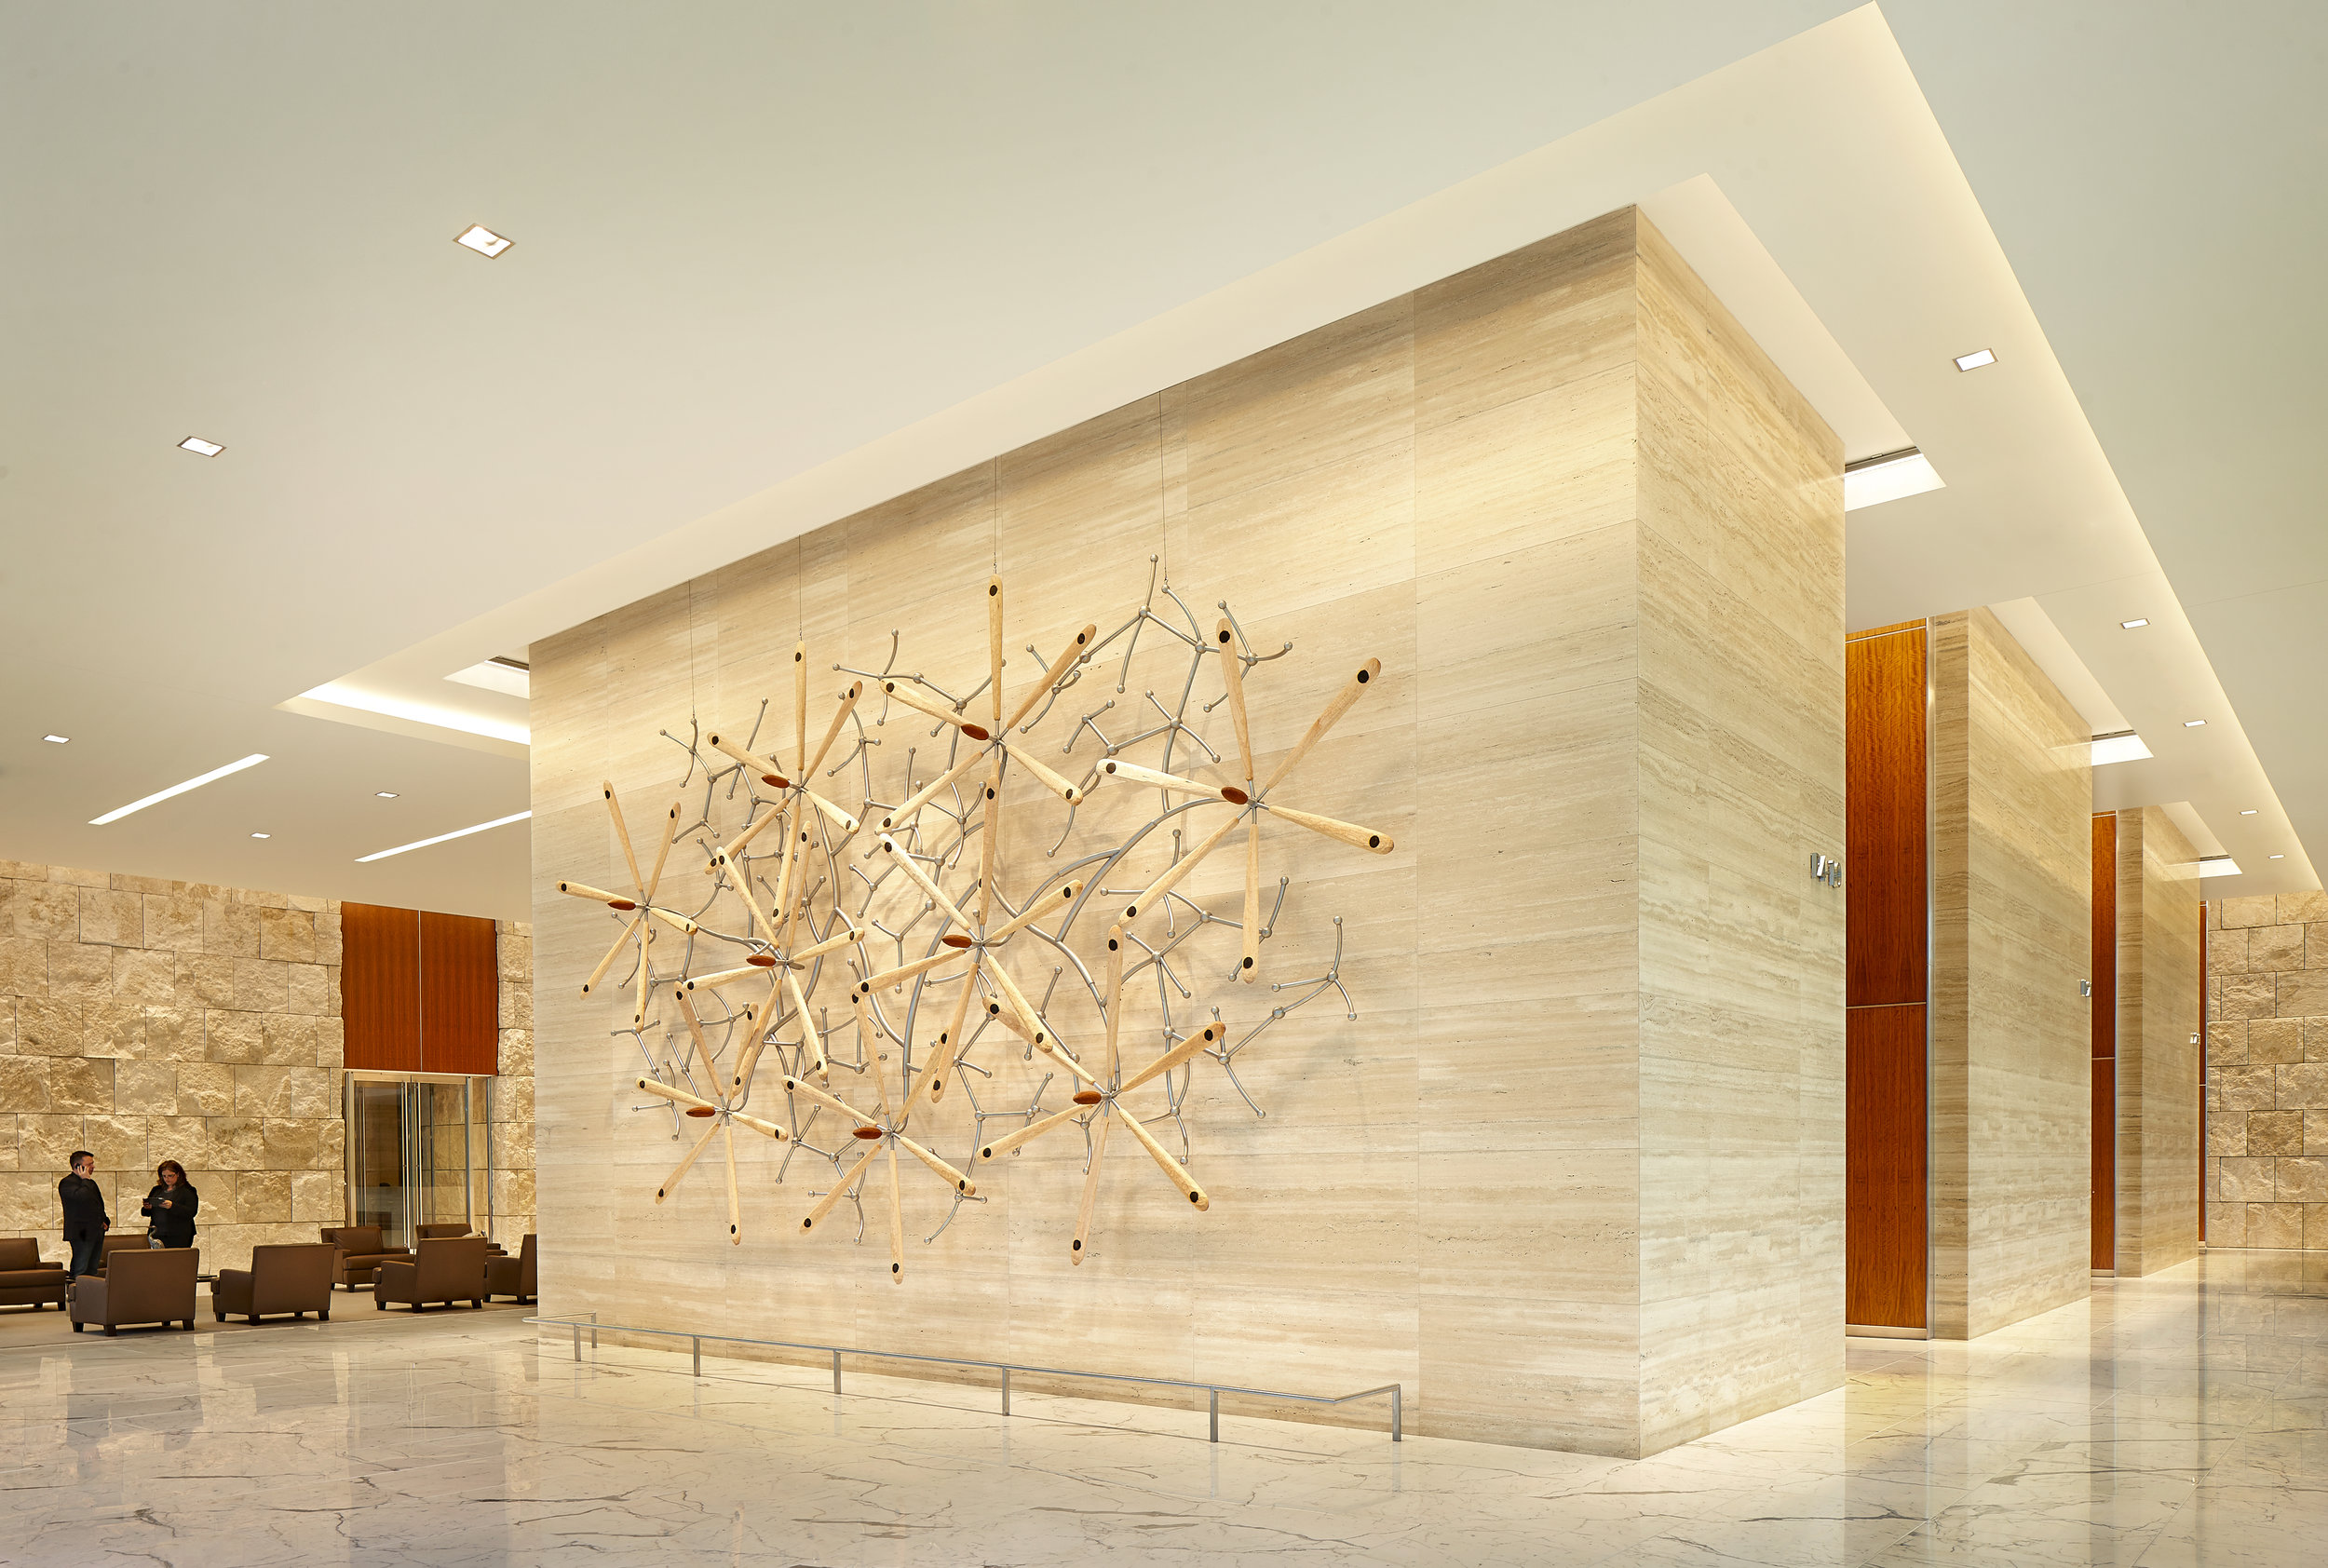 HIPHN_Anadarko Hackett Tower_Lobby Art_140401.jpg